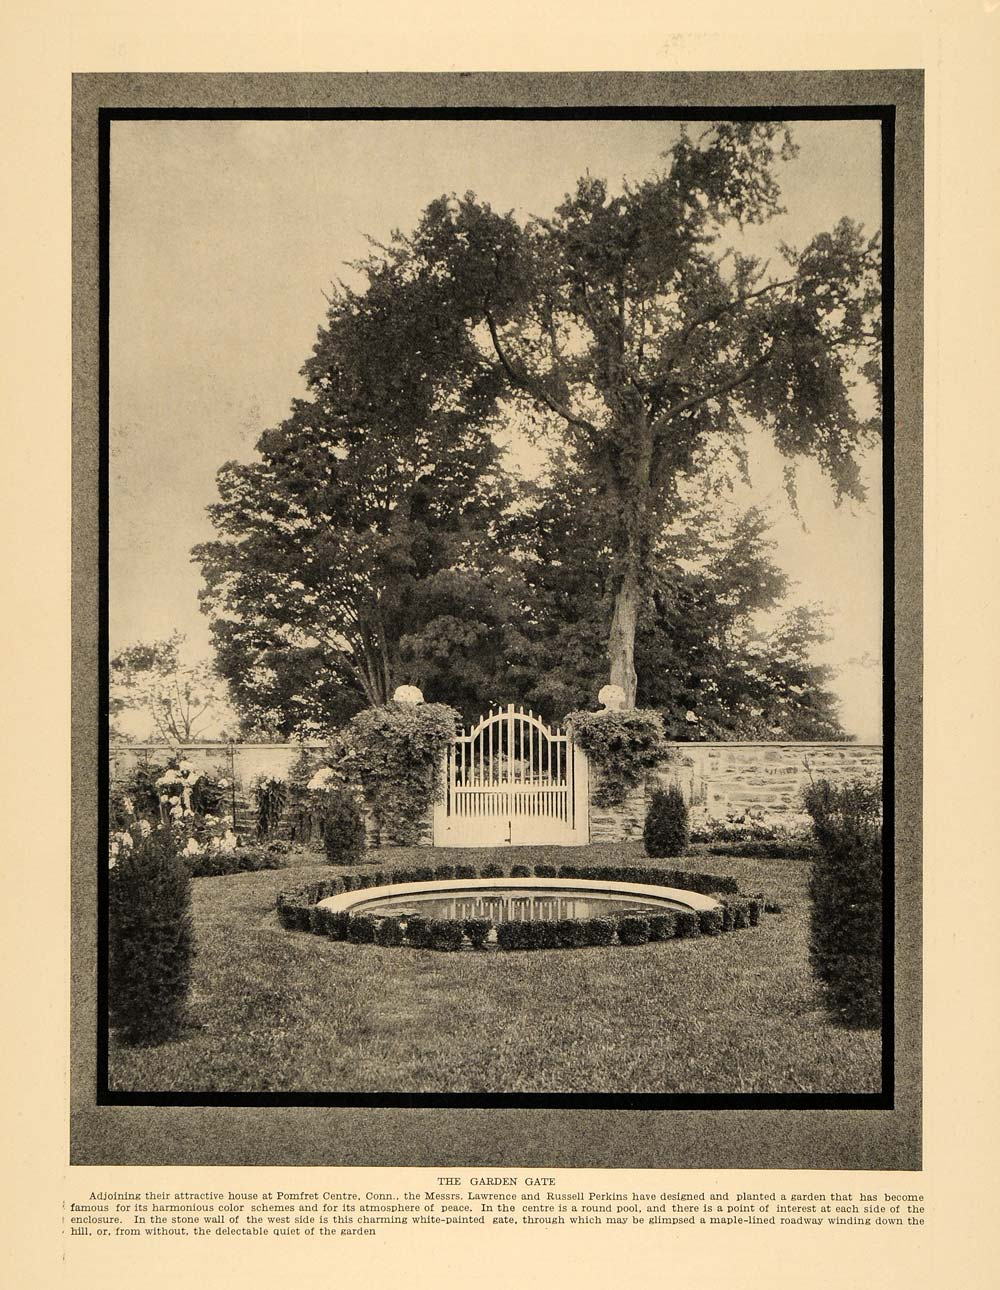 1913 Print Lawrence Russell Perkins Gate and Garden - ORIGINAL HISTORIC CL9